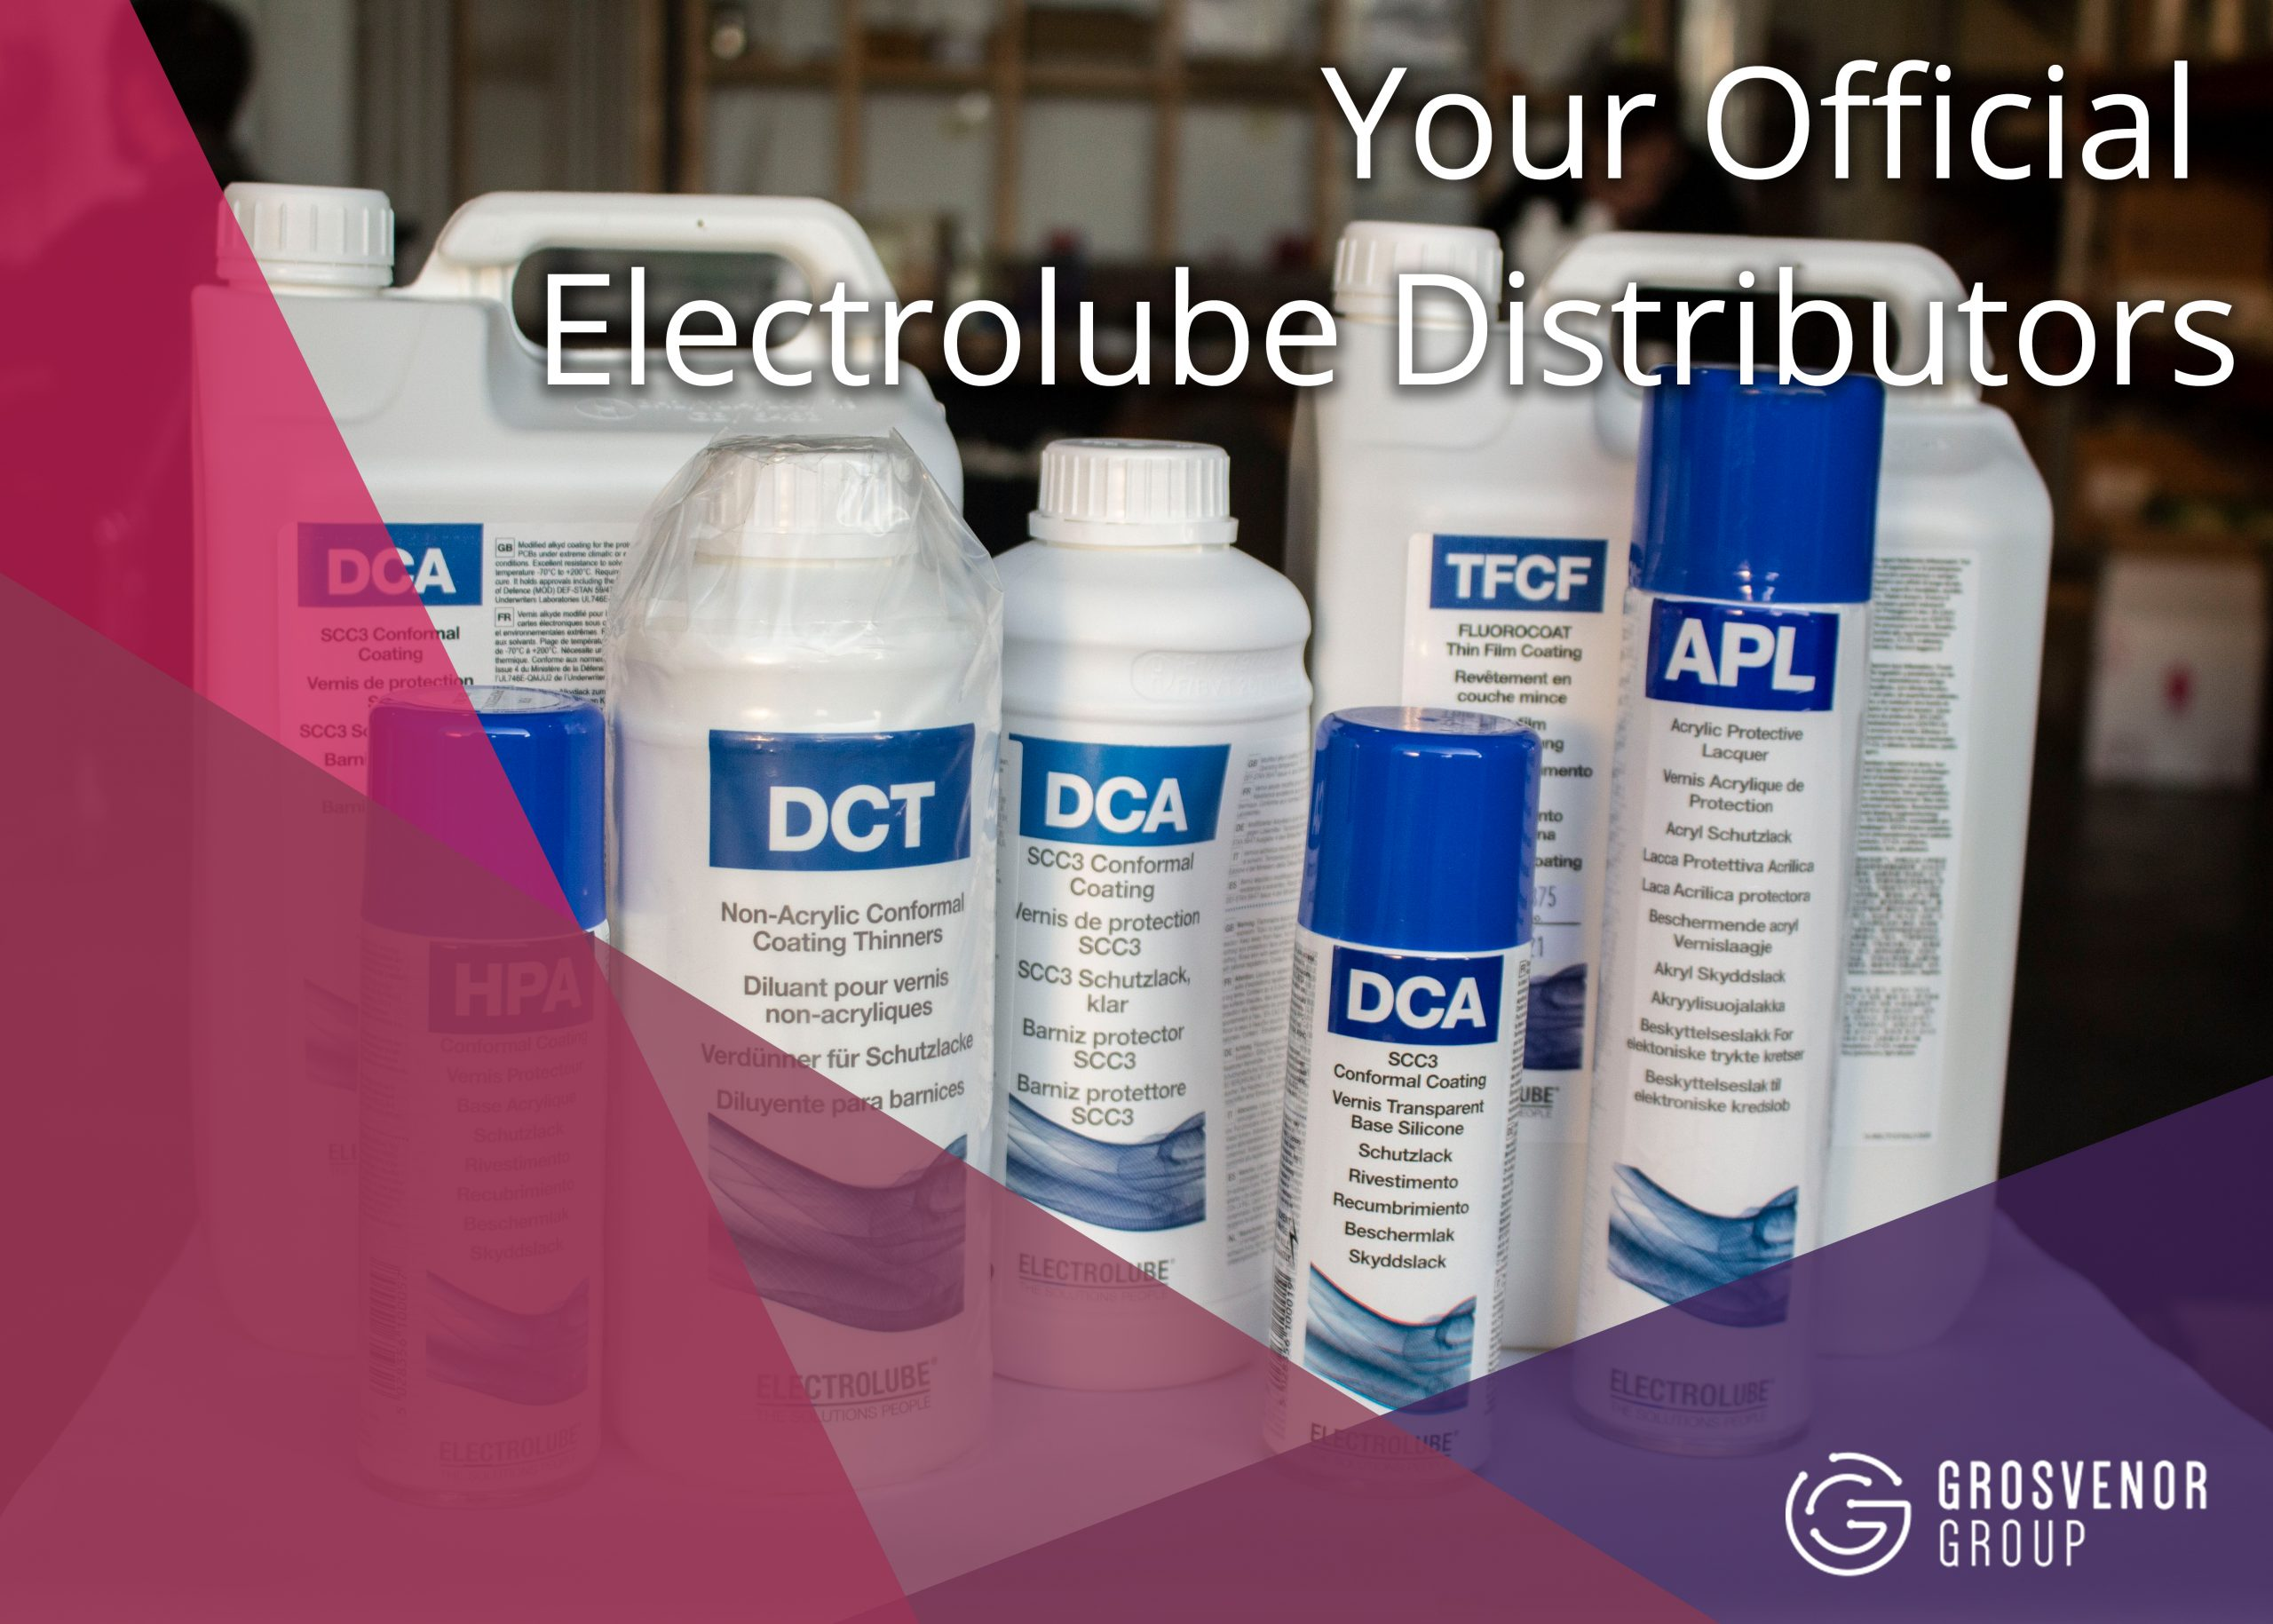 Your Official Electrolube Distributors